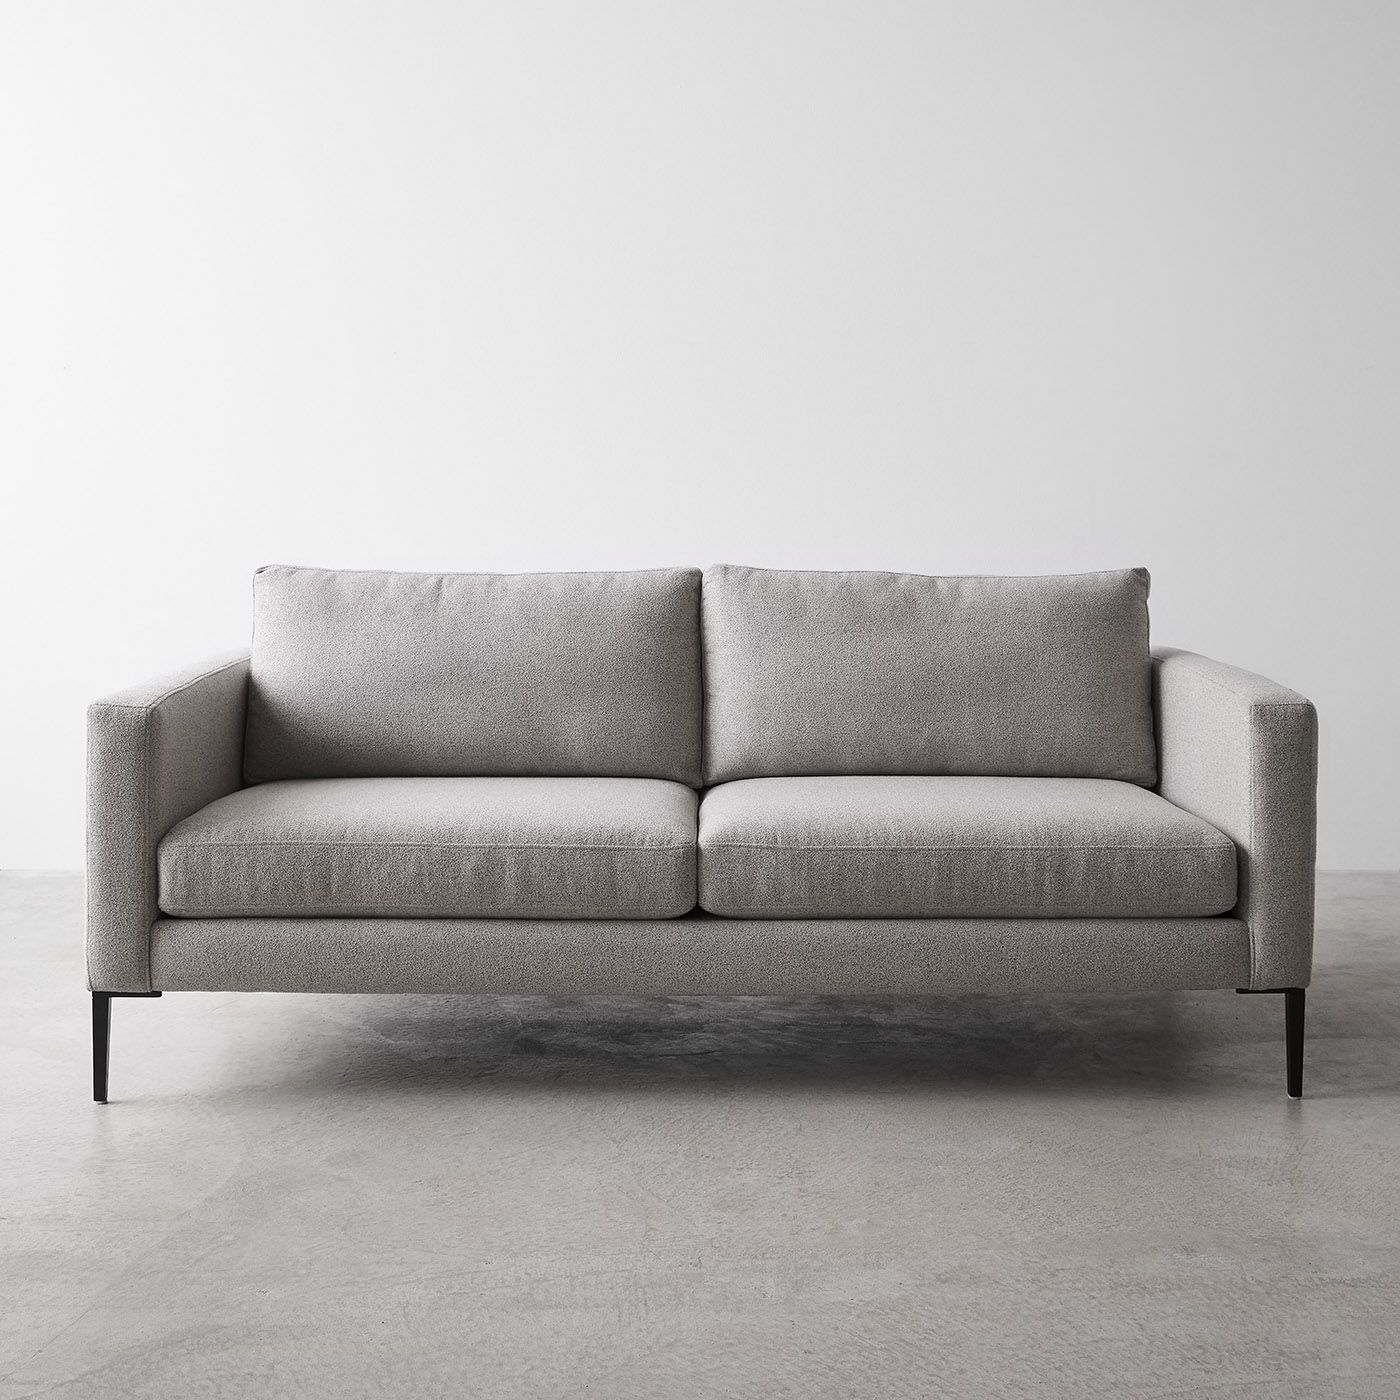 Irving Gray Apartment Sofa 76 Products In 2019 Apartment Sofa